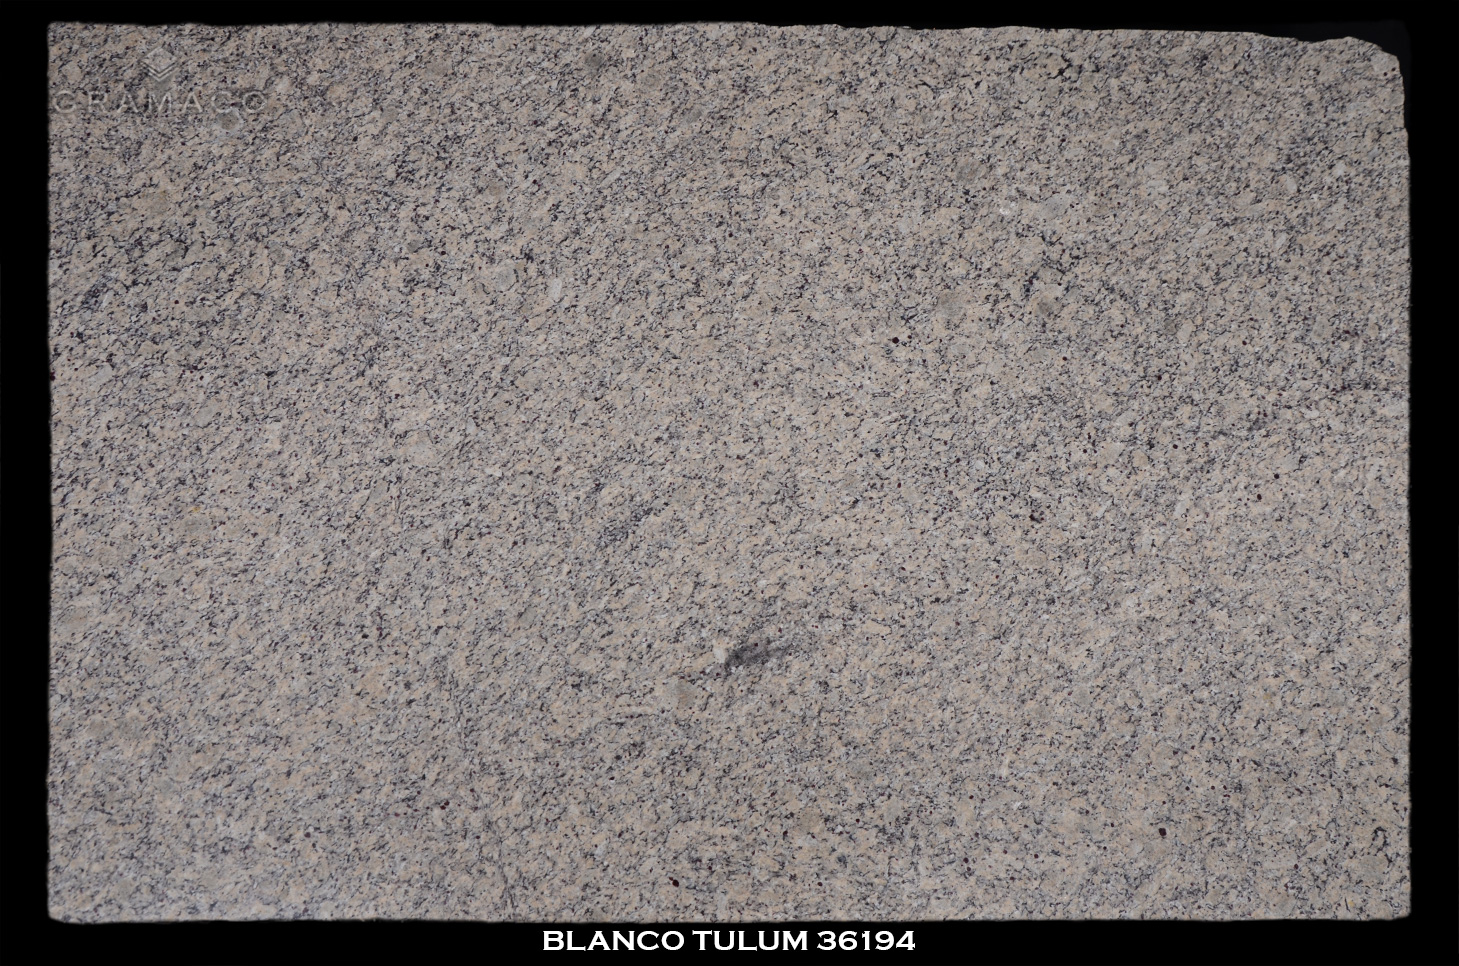 BLANCO-TULUM-36194--FULL-SLAB-BLACK